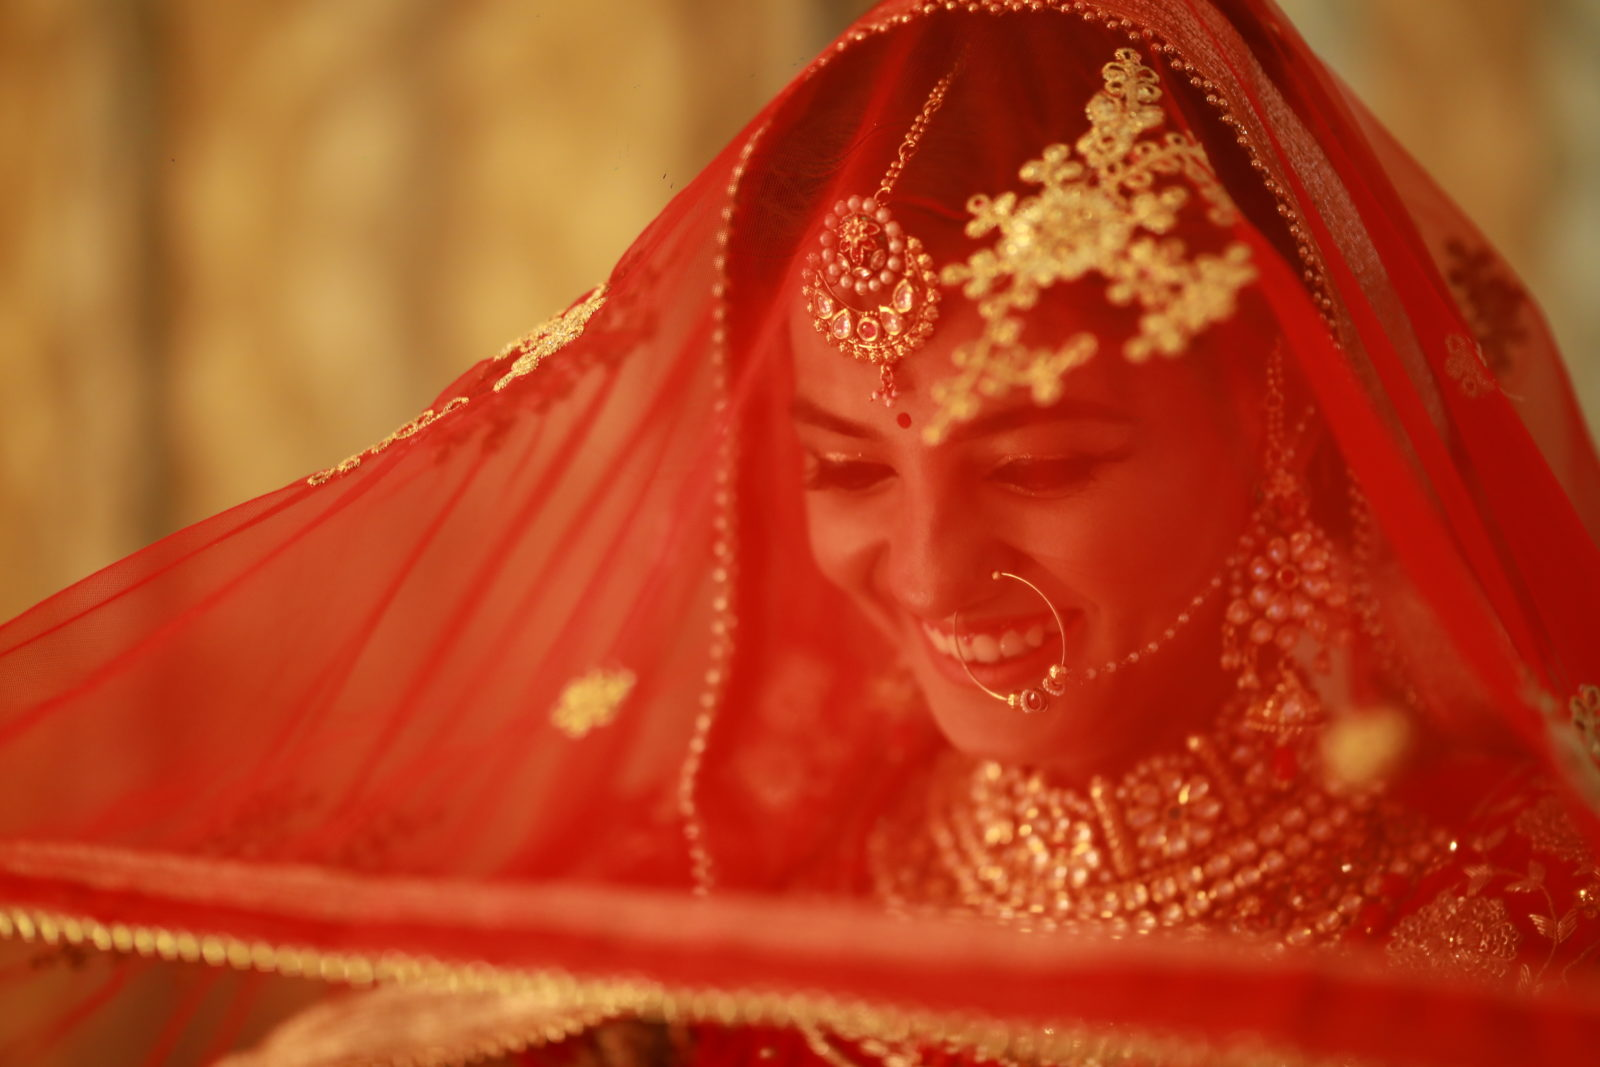 Destination wedding planner, wedding planners, Destination Weddings India, Destination Wedding, Destination Weddings, Wedding Planners, Wedding Planner, Wedding Decorator, wedding Sound, LED, wedding Photographer, Entertainment in wedding , wedding planning, wedding Cinematography, Mehendi in wedding, makeup in wedding, best bridel makeup artist in india, venue search, venue booking, wedding decoration , Photo Booths, destination wedding potographer, bride poses, bridal poses, fireworks, bride entry, couple entry